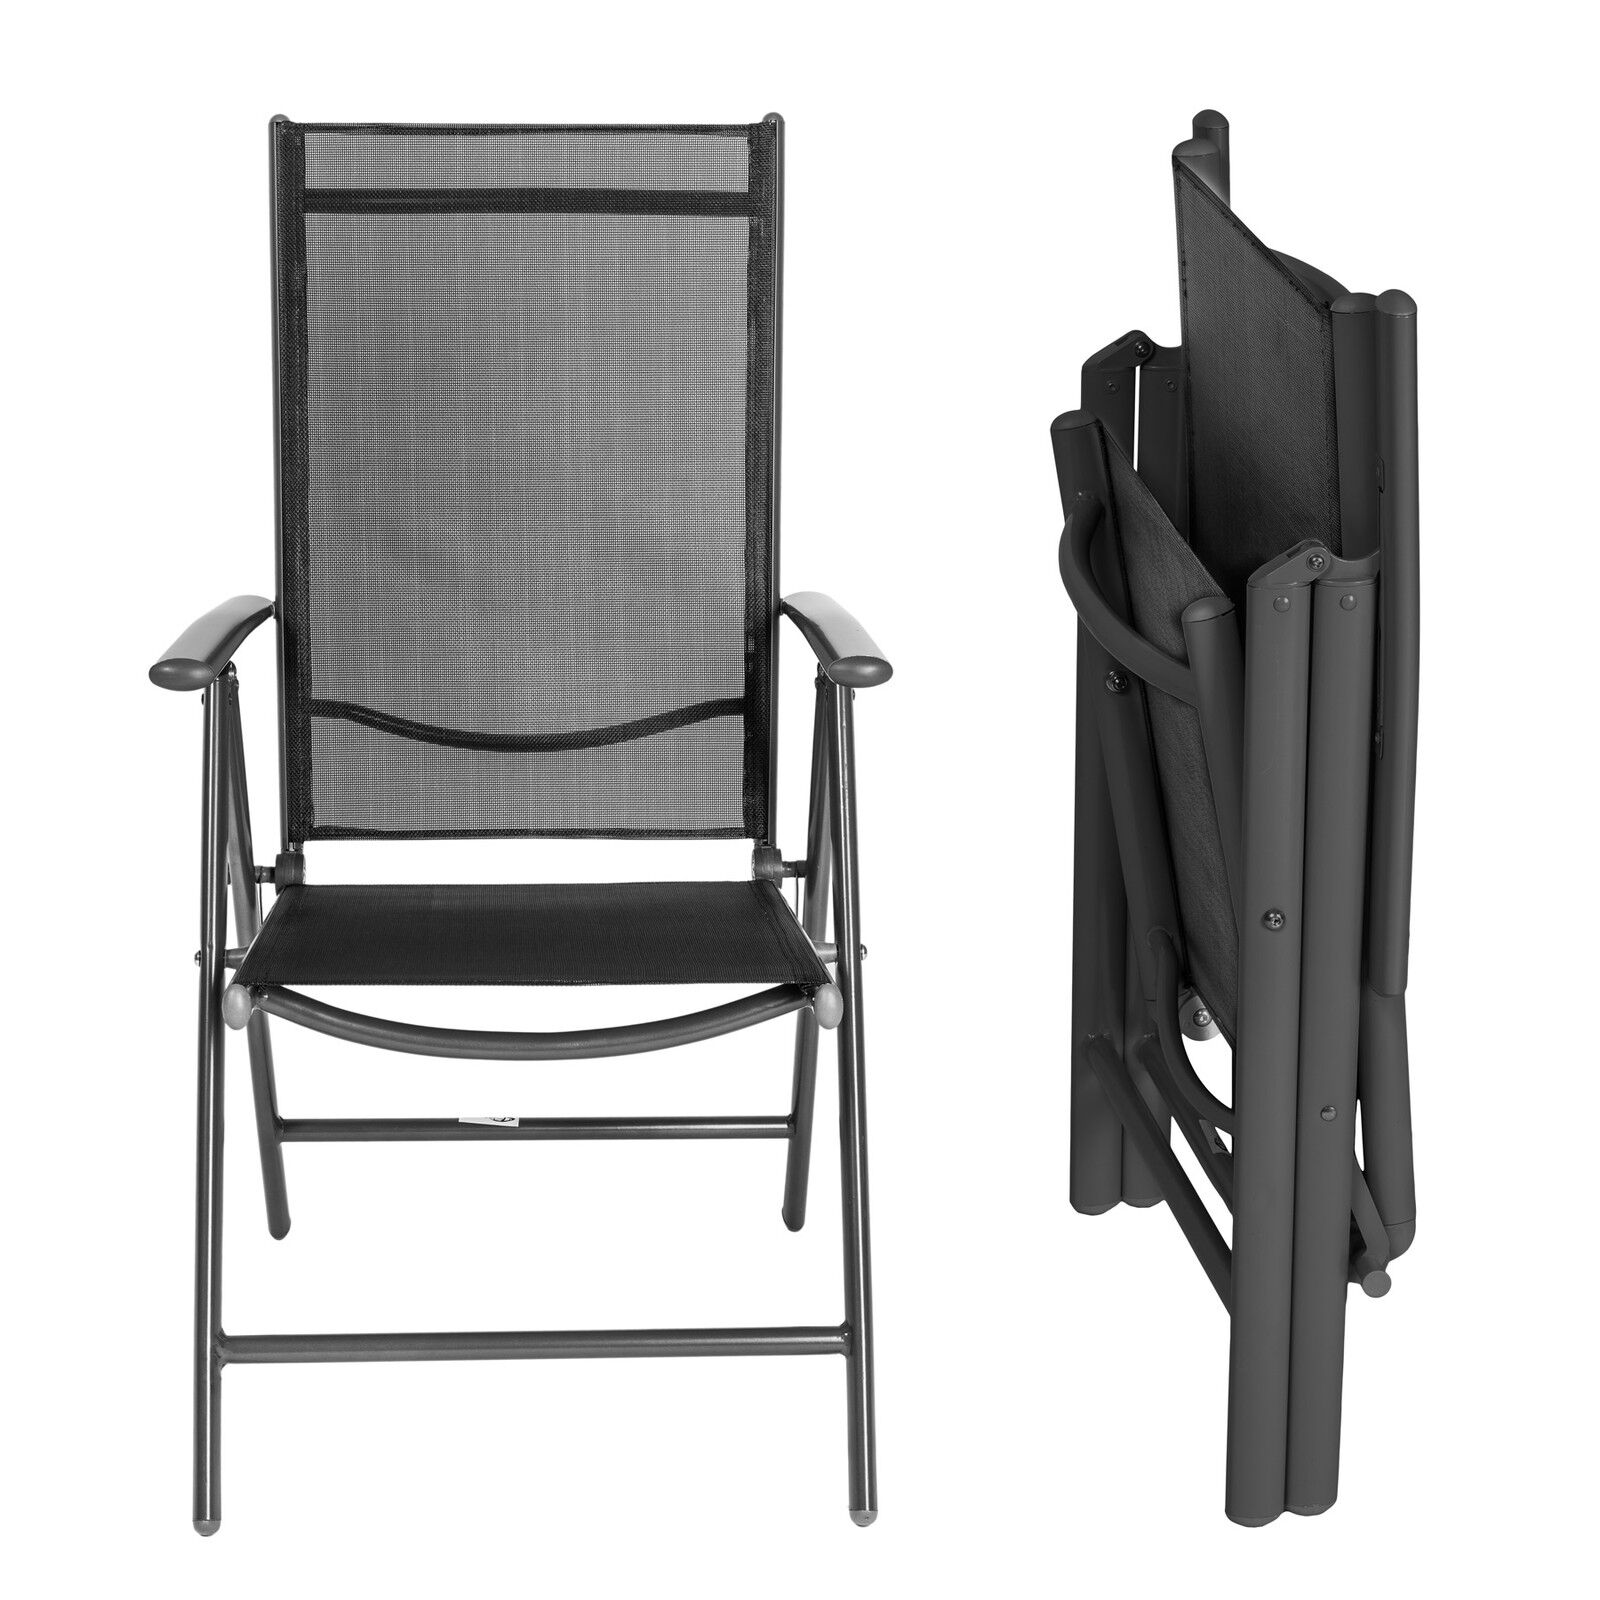 4er set alu klappstuhl gartenstuhl aluminium campingstuhl hochlehner anthrazit eur 104 99. Black Bedroom Furniture Sets. Home Design Ideas